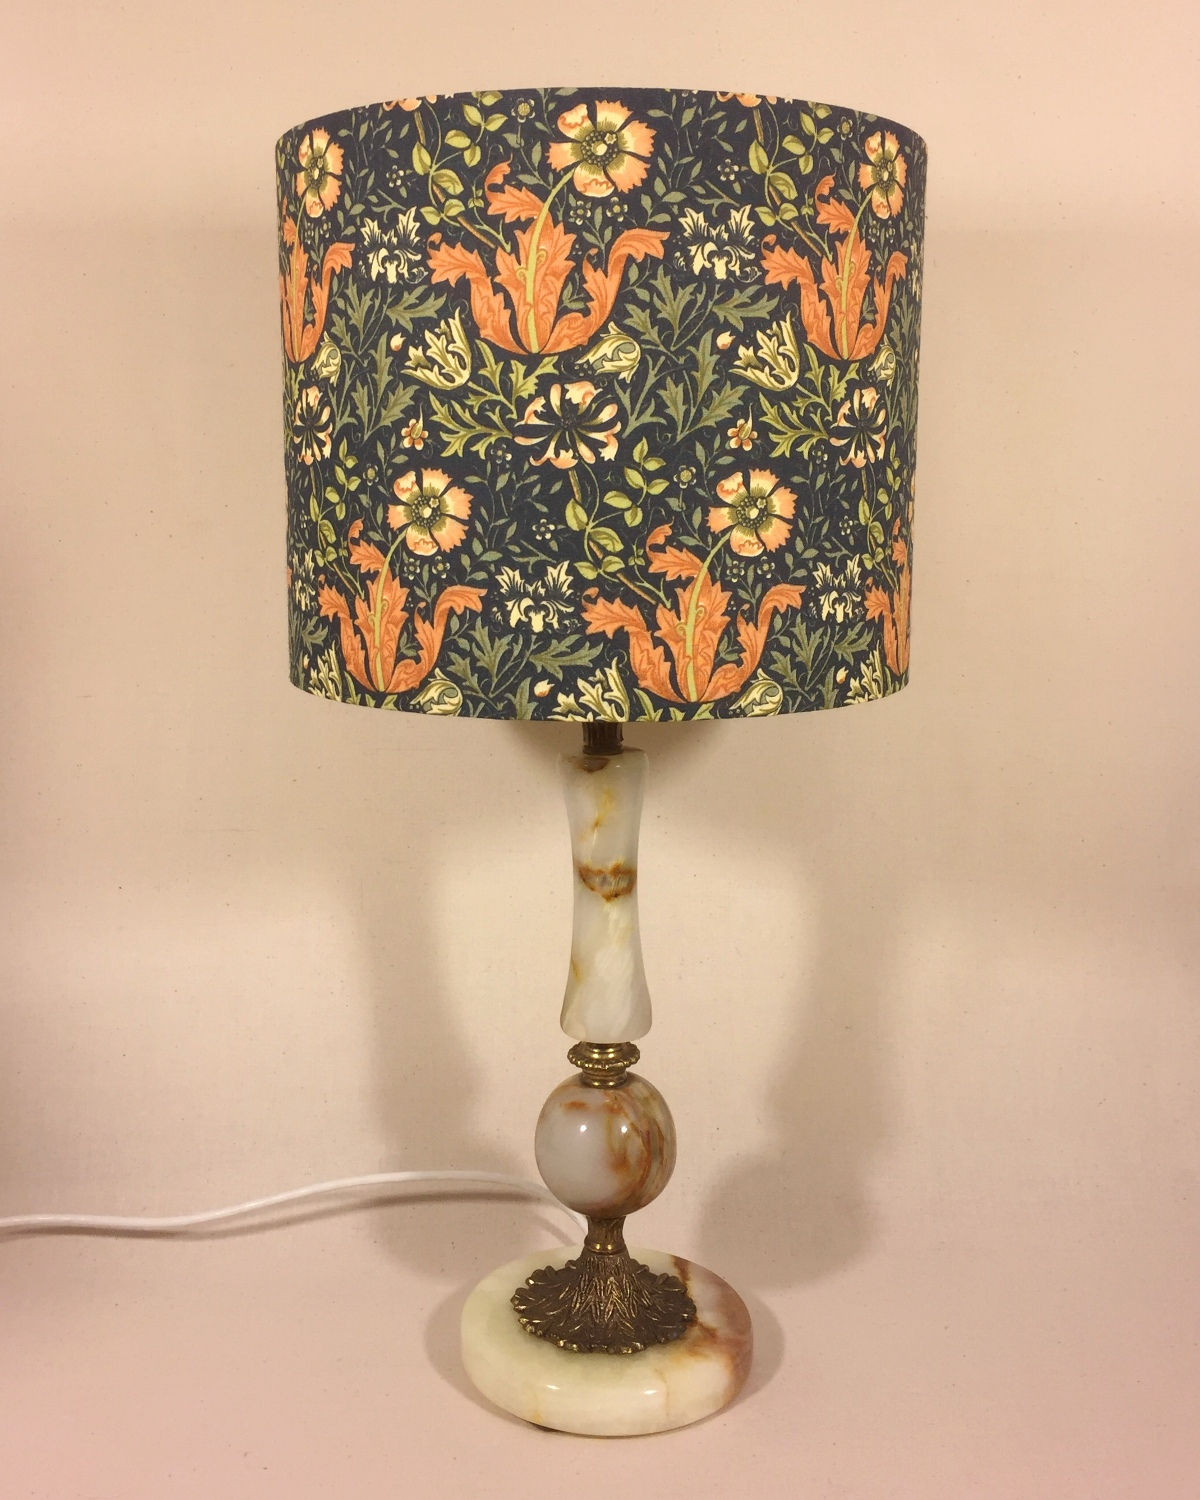 Kelmscott Manor vintage lamp and handmade shade